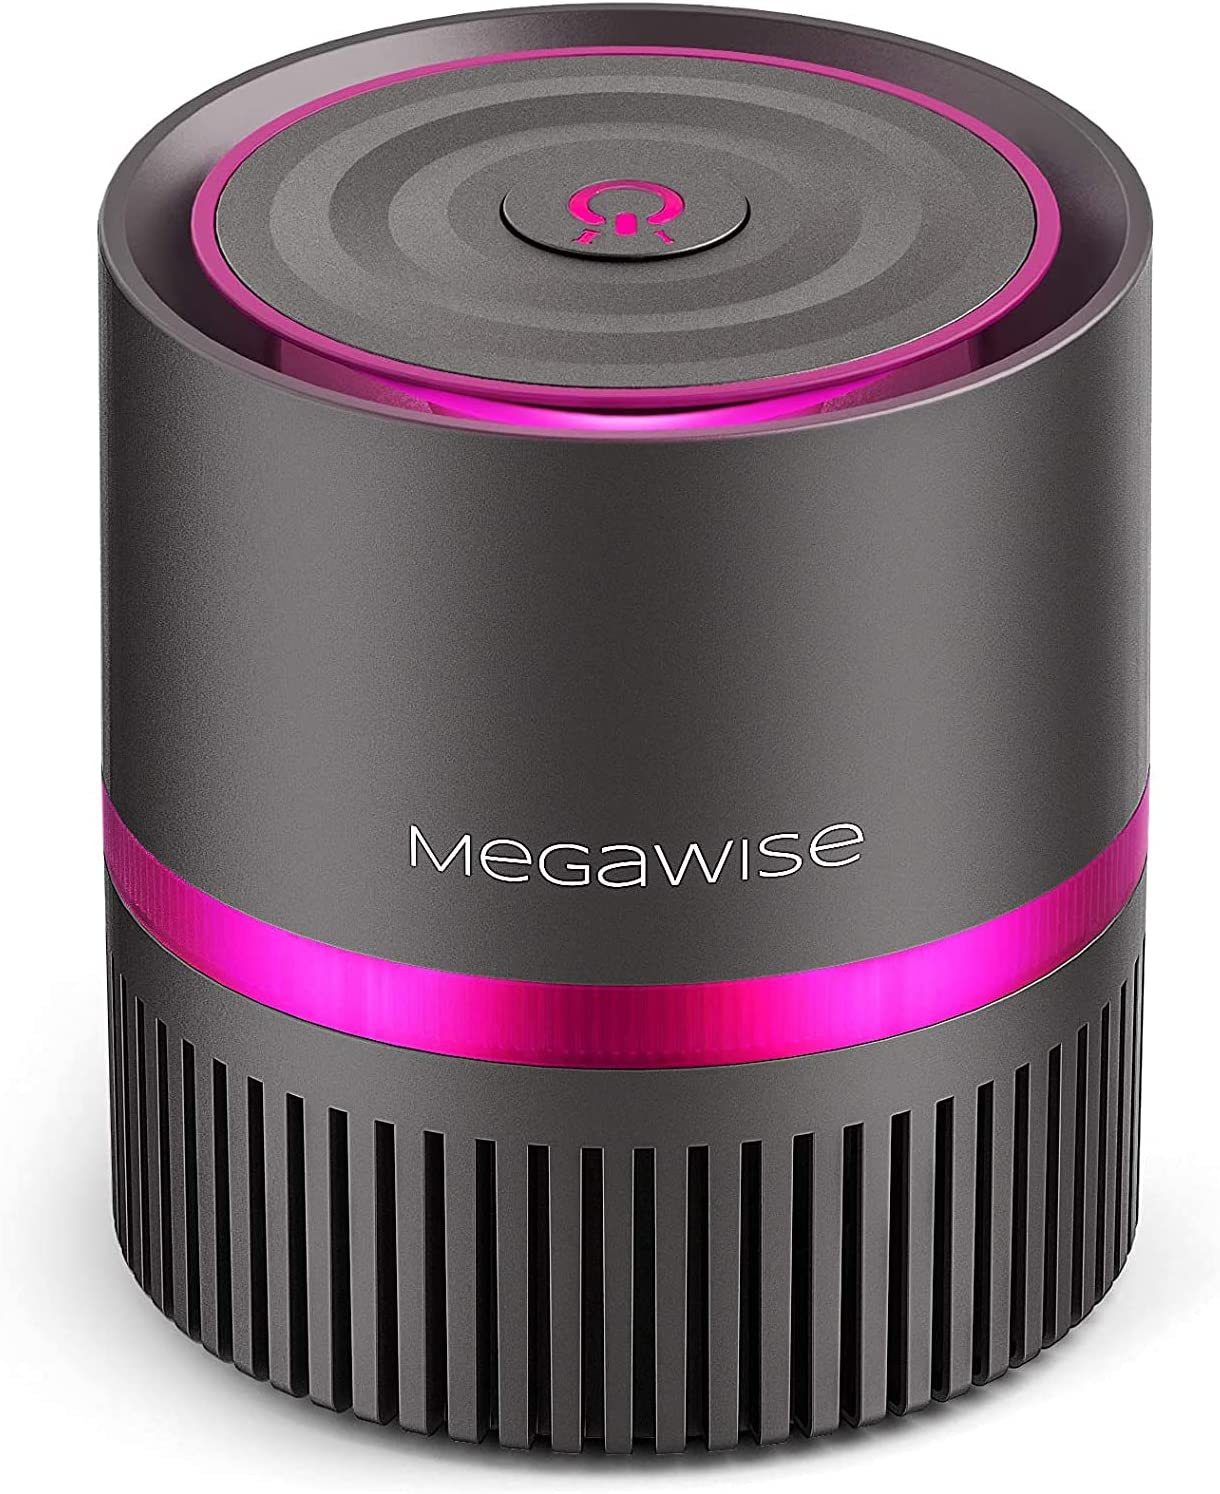 Max 62% OFF MEGAWISE True H13 HEPA Air Purifier for Great interest Small Bedroom Home Room